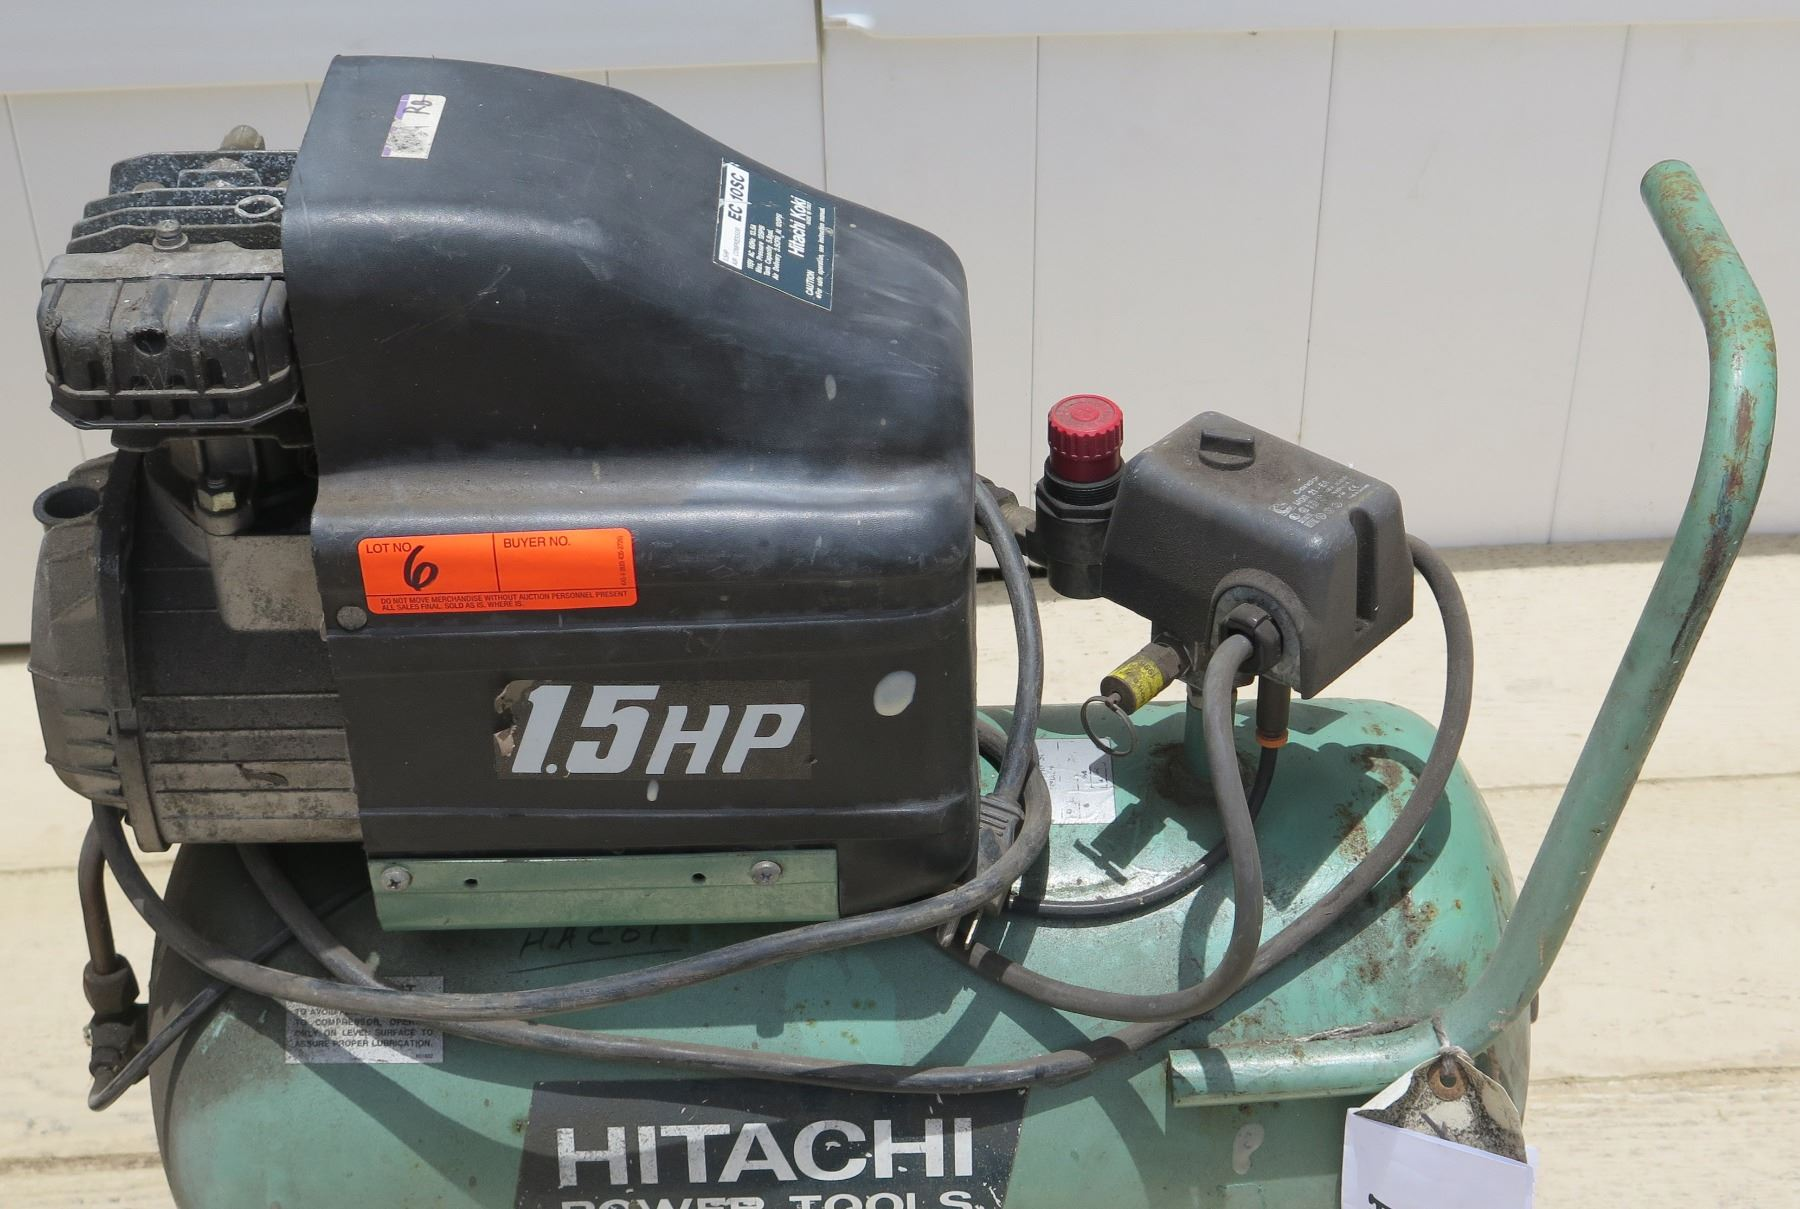 image 2 tools hitachi koki ec 10sc and stanley bostitch cwc156 1 5 hp air  [ 1800 x 1209 Pixel ]